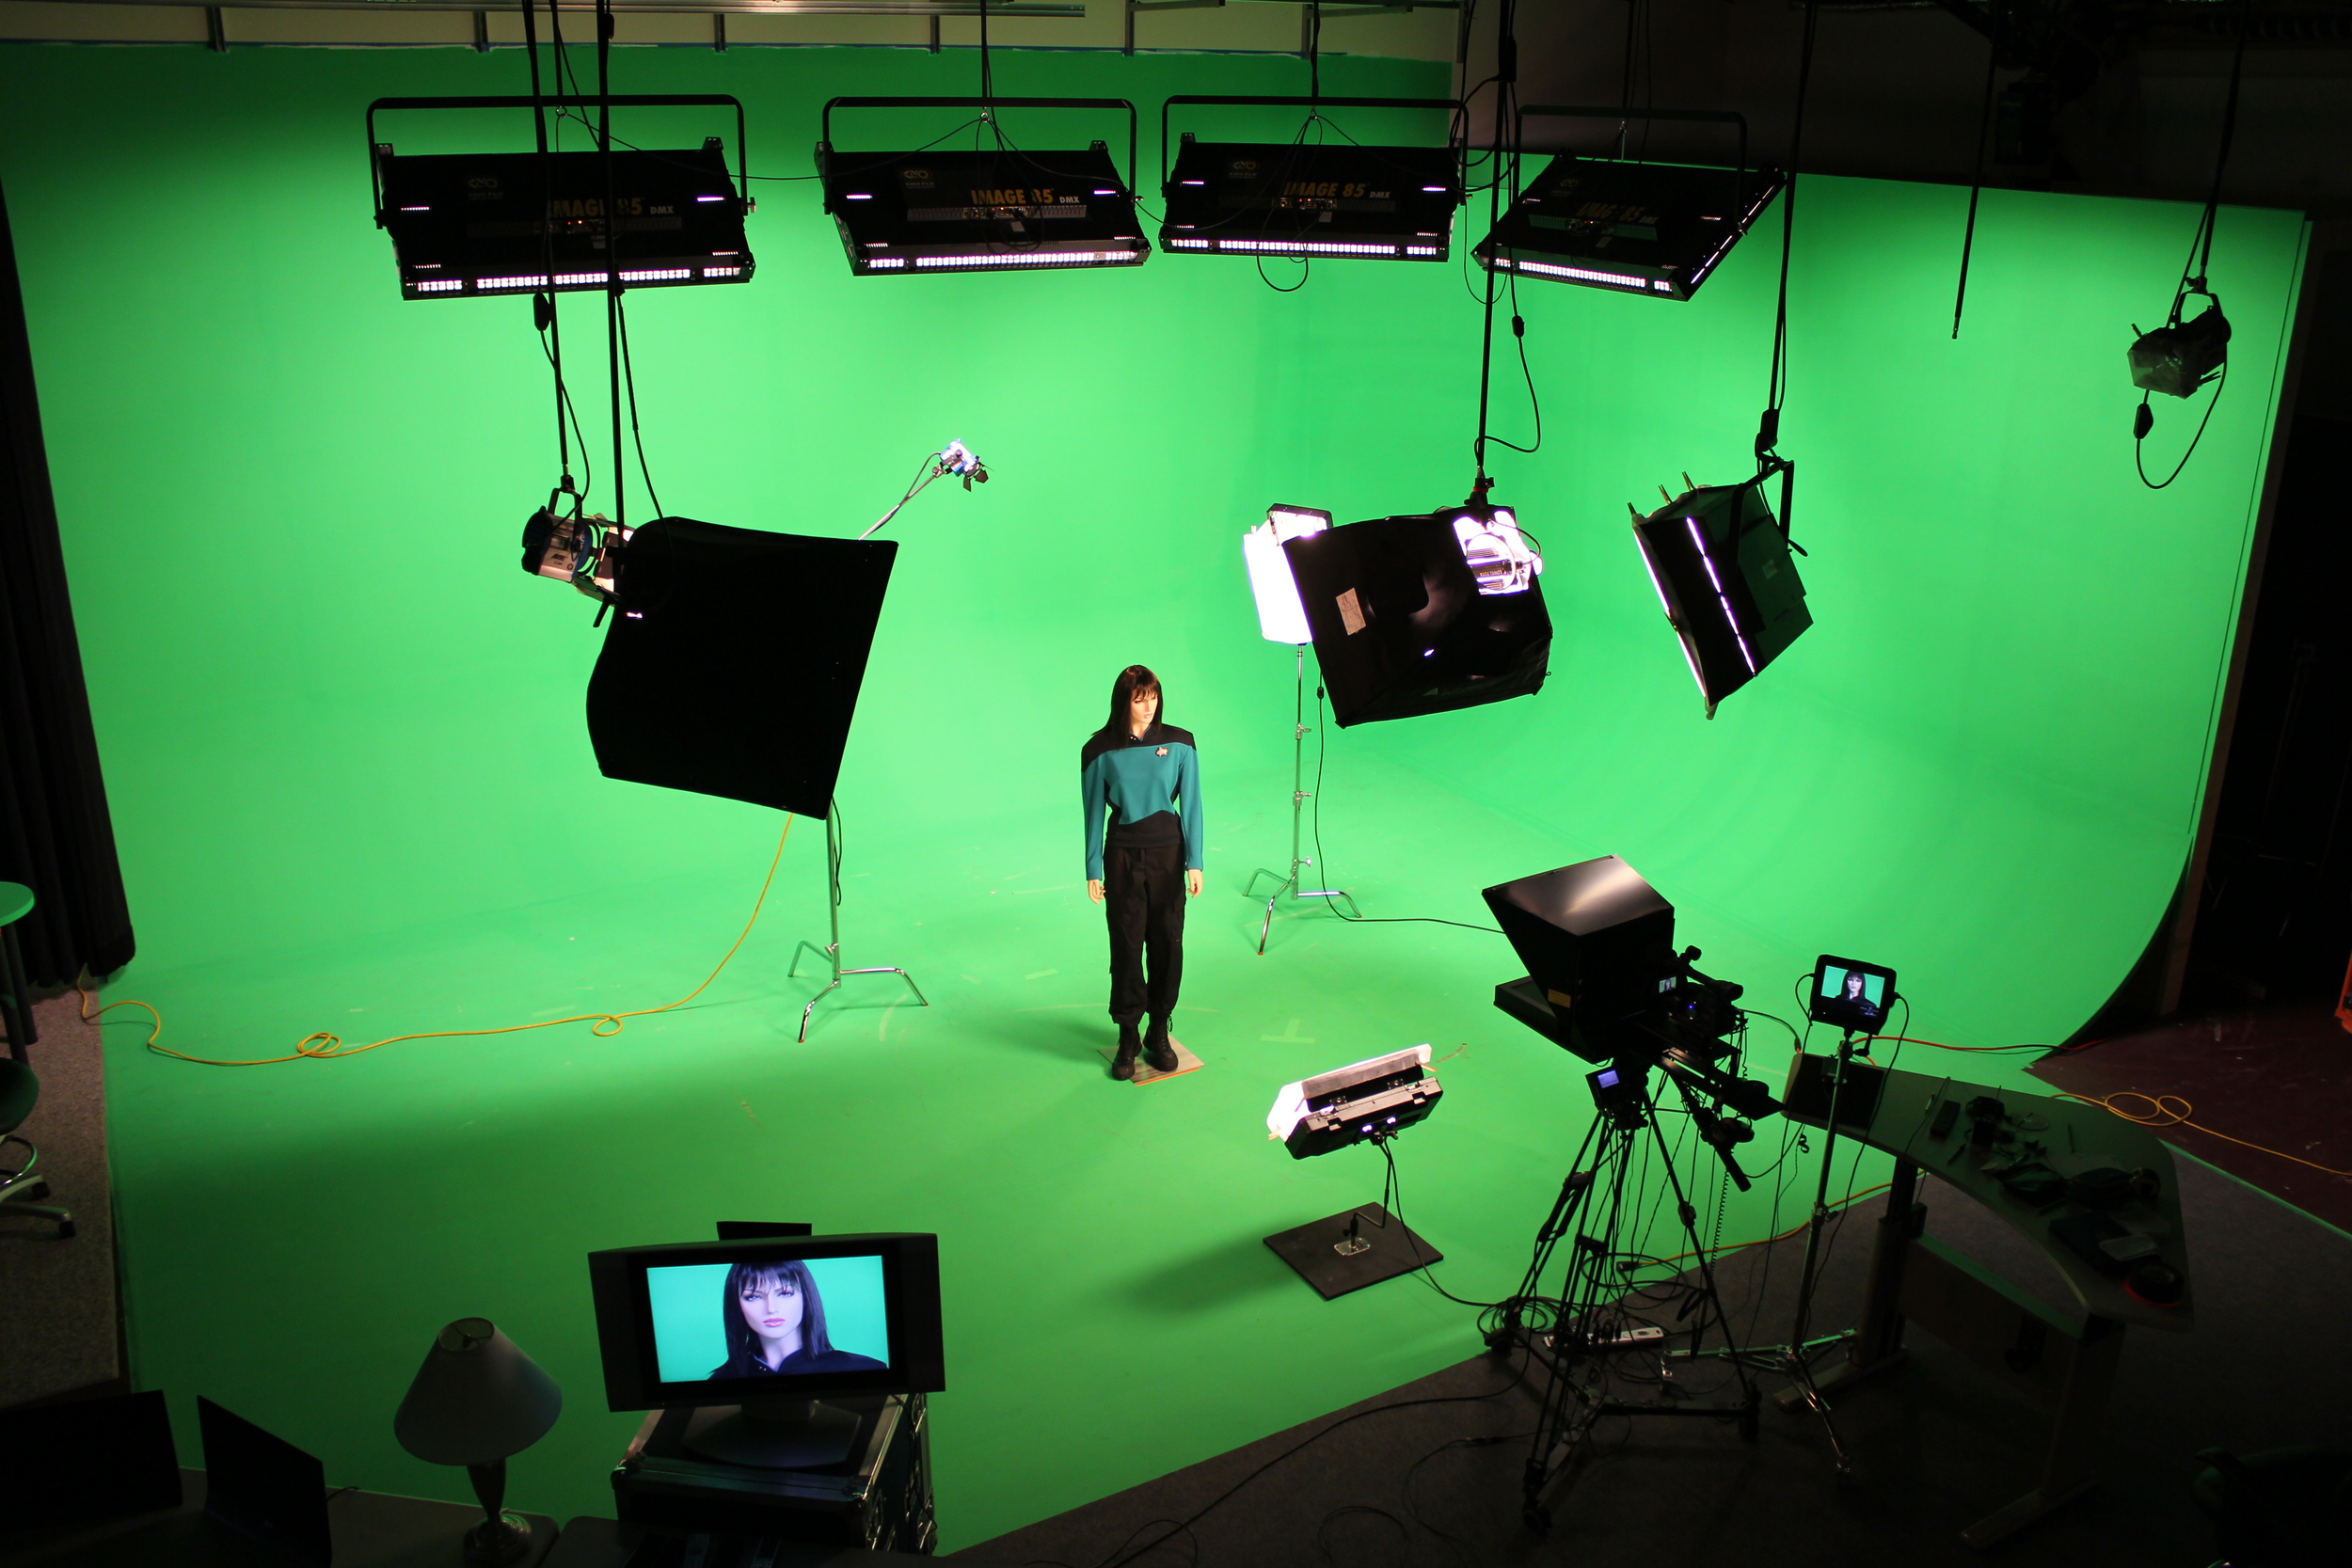 Setting up for a green screen shoot